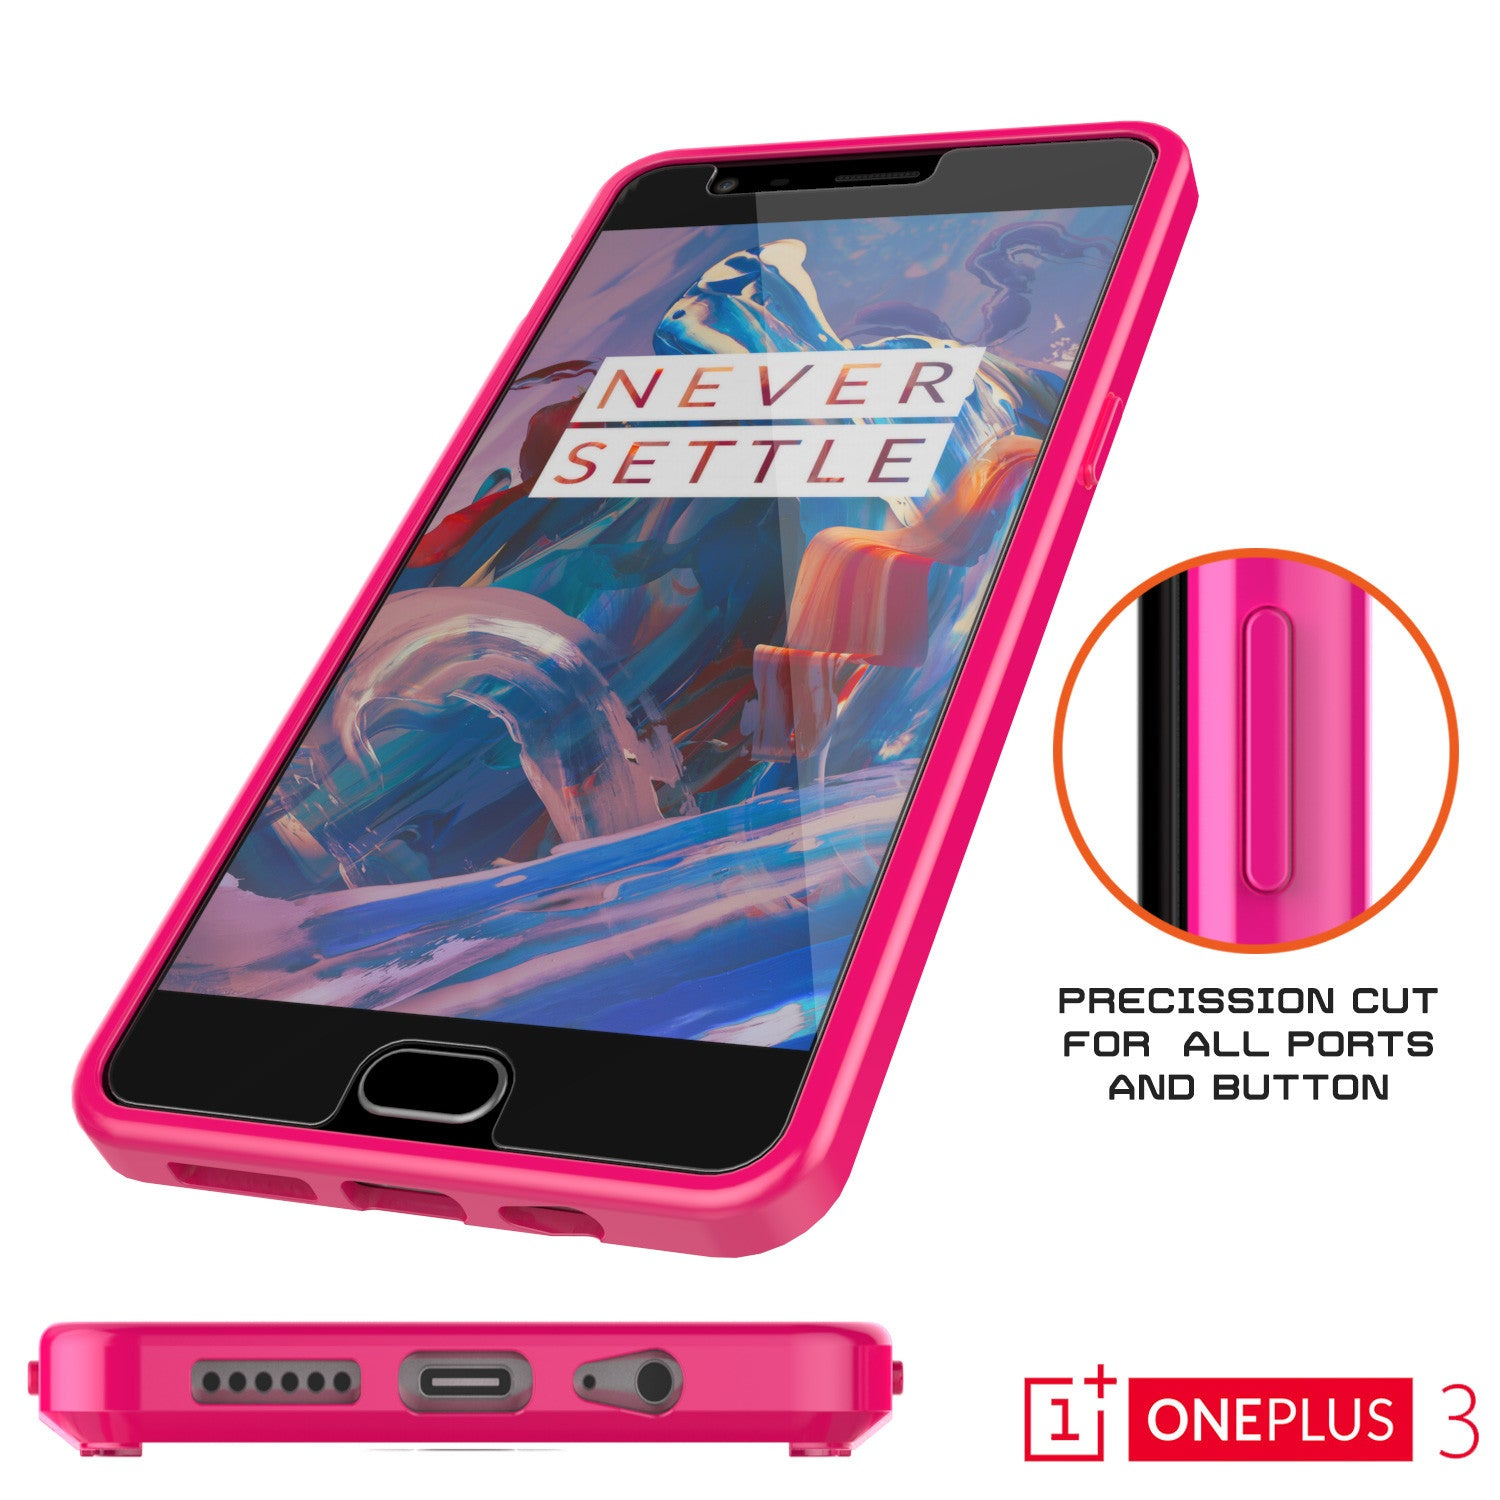 OnePlus 3 Case Punkcase® LUCID 2.0 Pink Series w/ SHIELD GLASS Lifetime Warranty Exchange